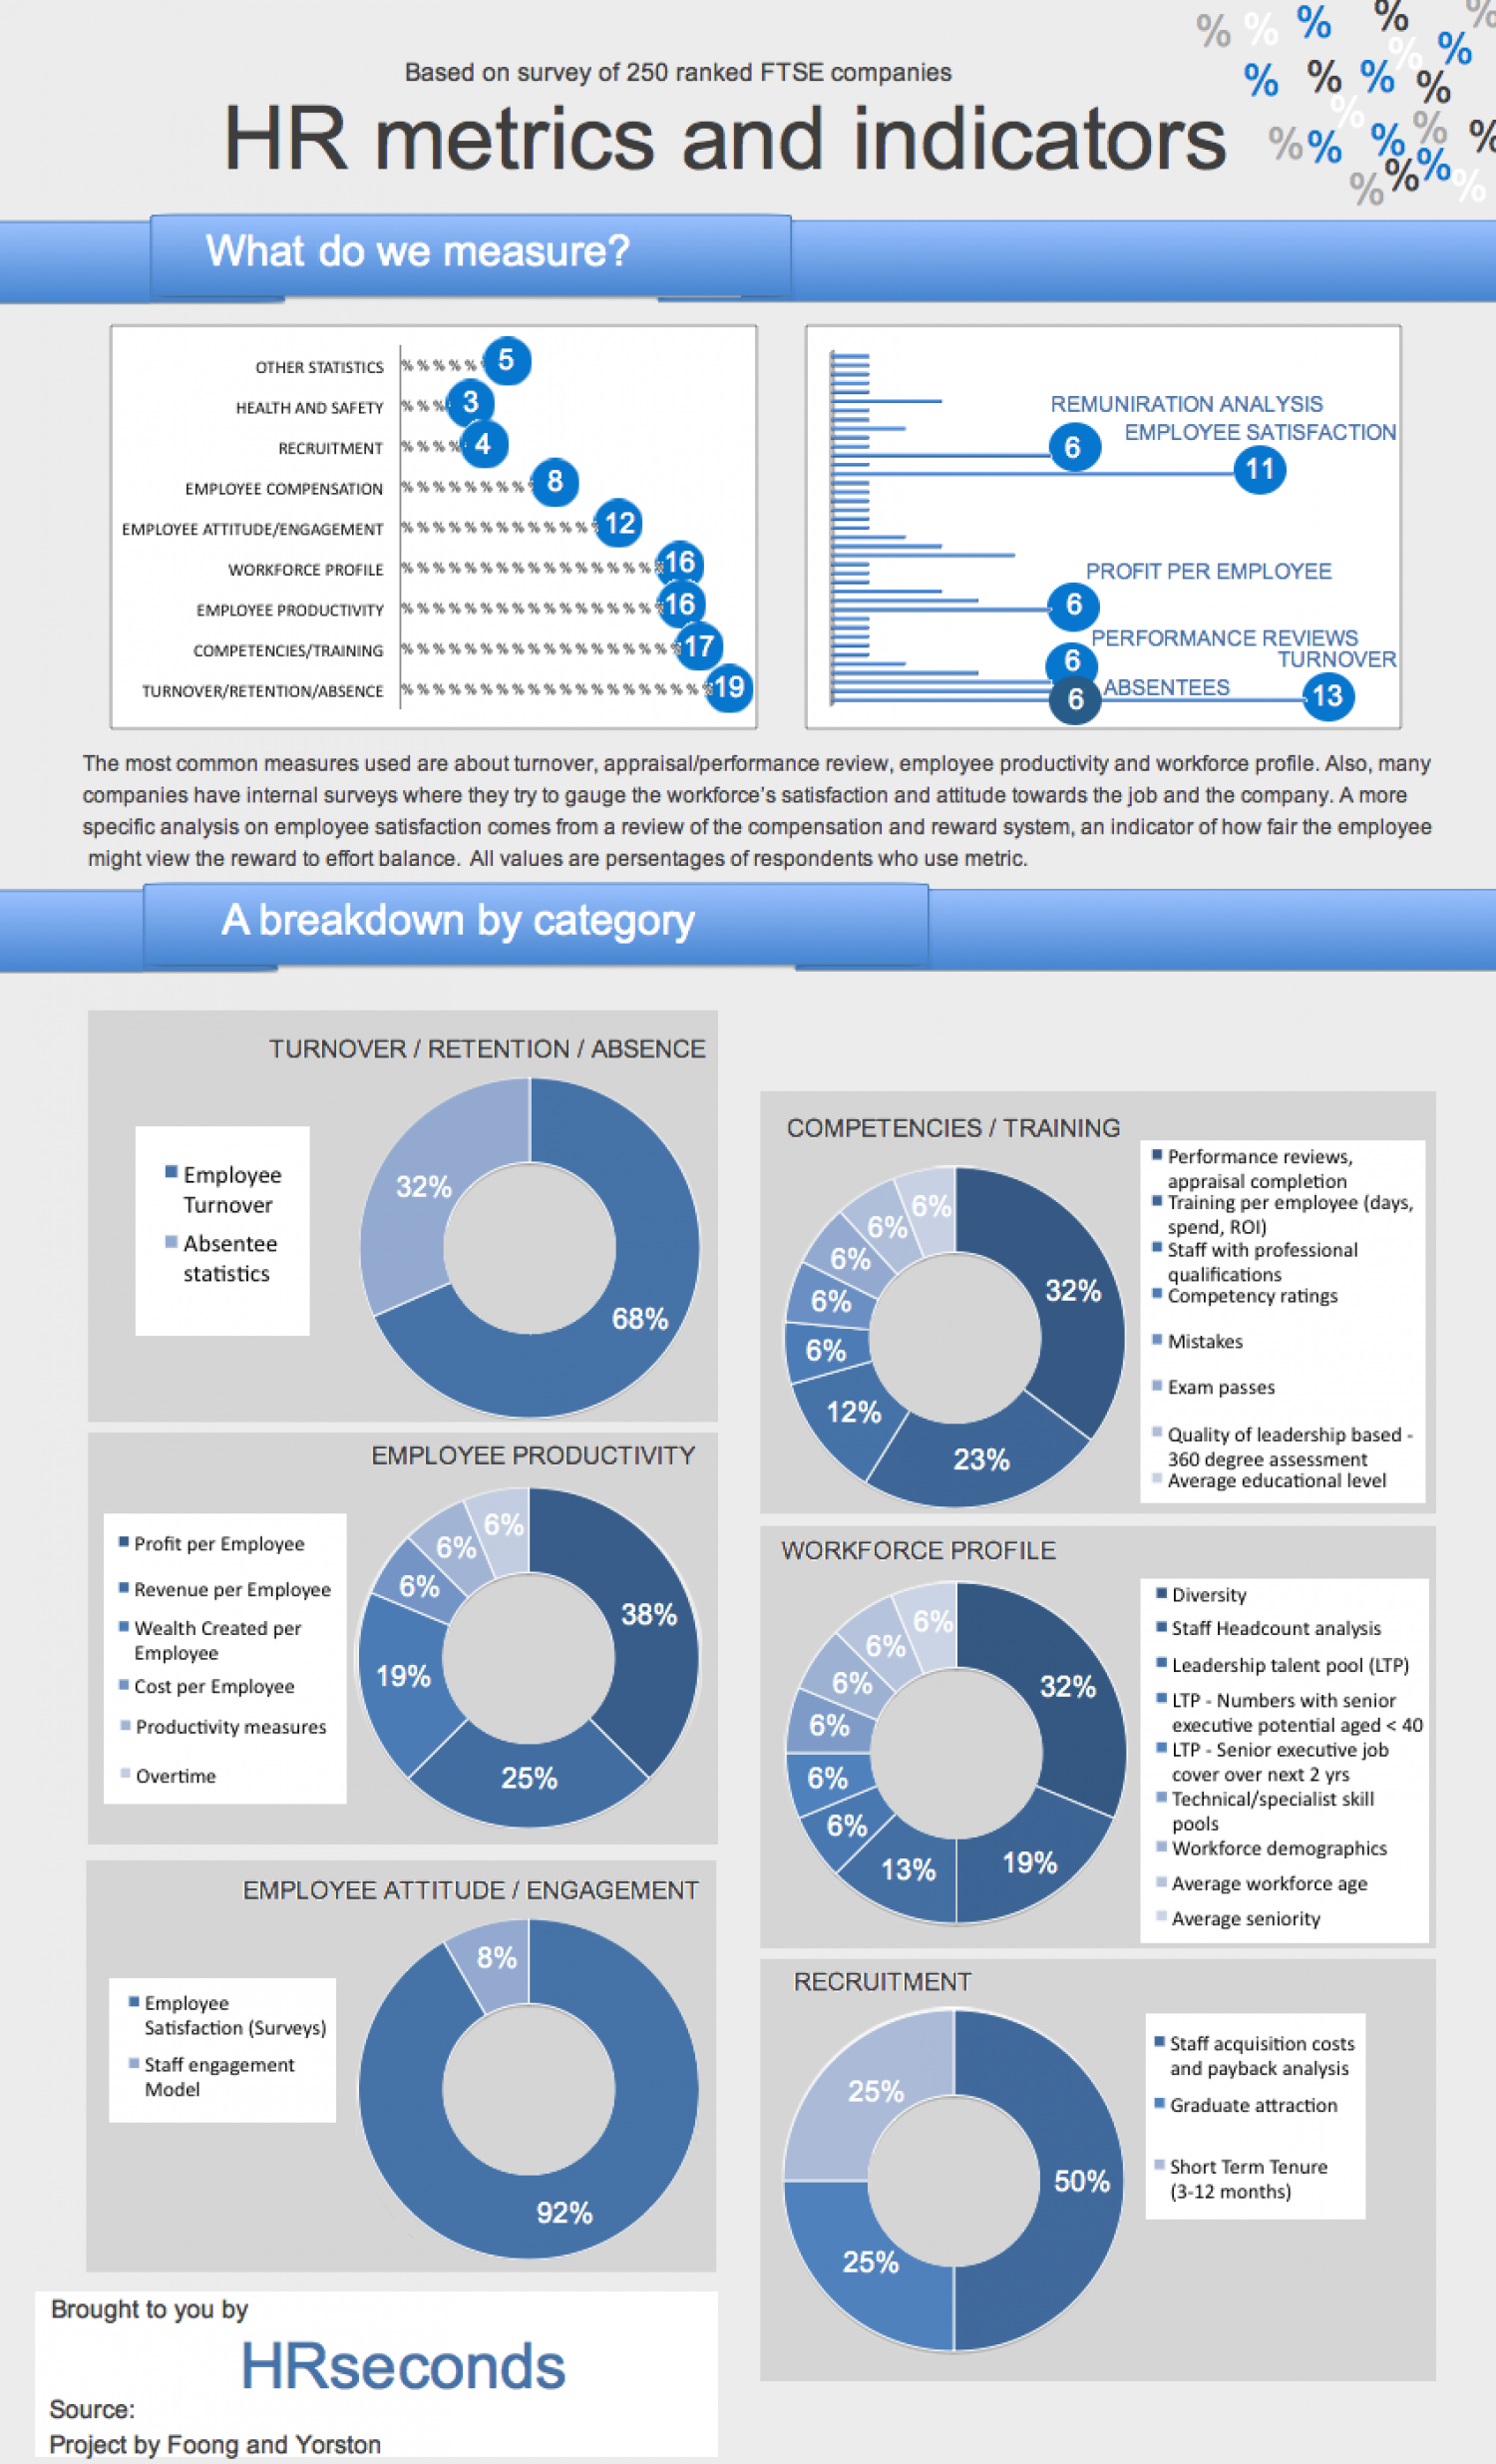 HR metrics and indicators, survey results Infographic